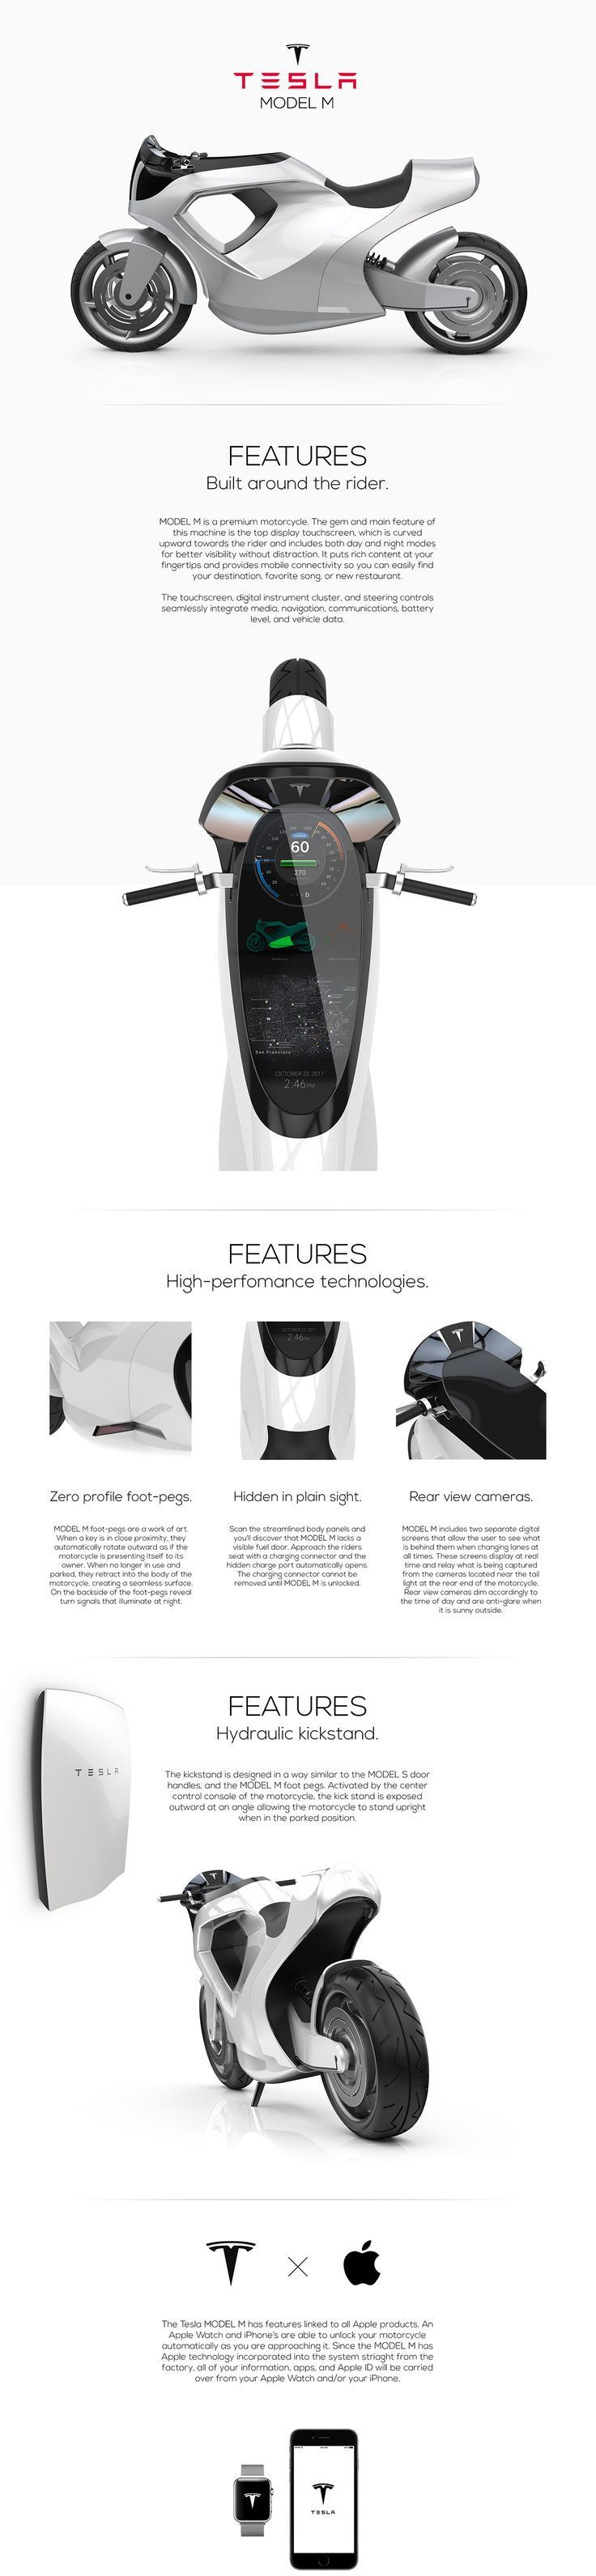 #TESLA MODEL M on Behance  #ev